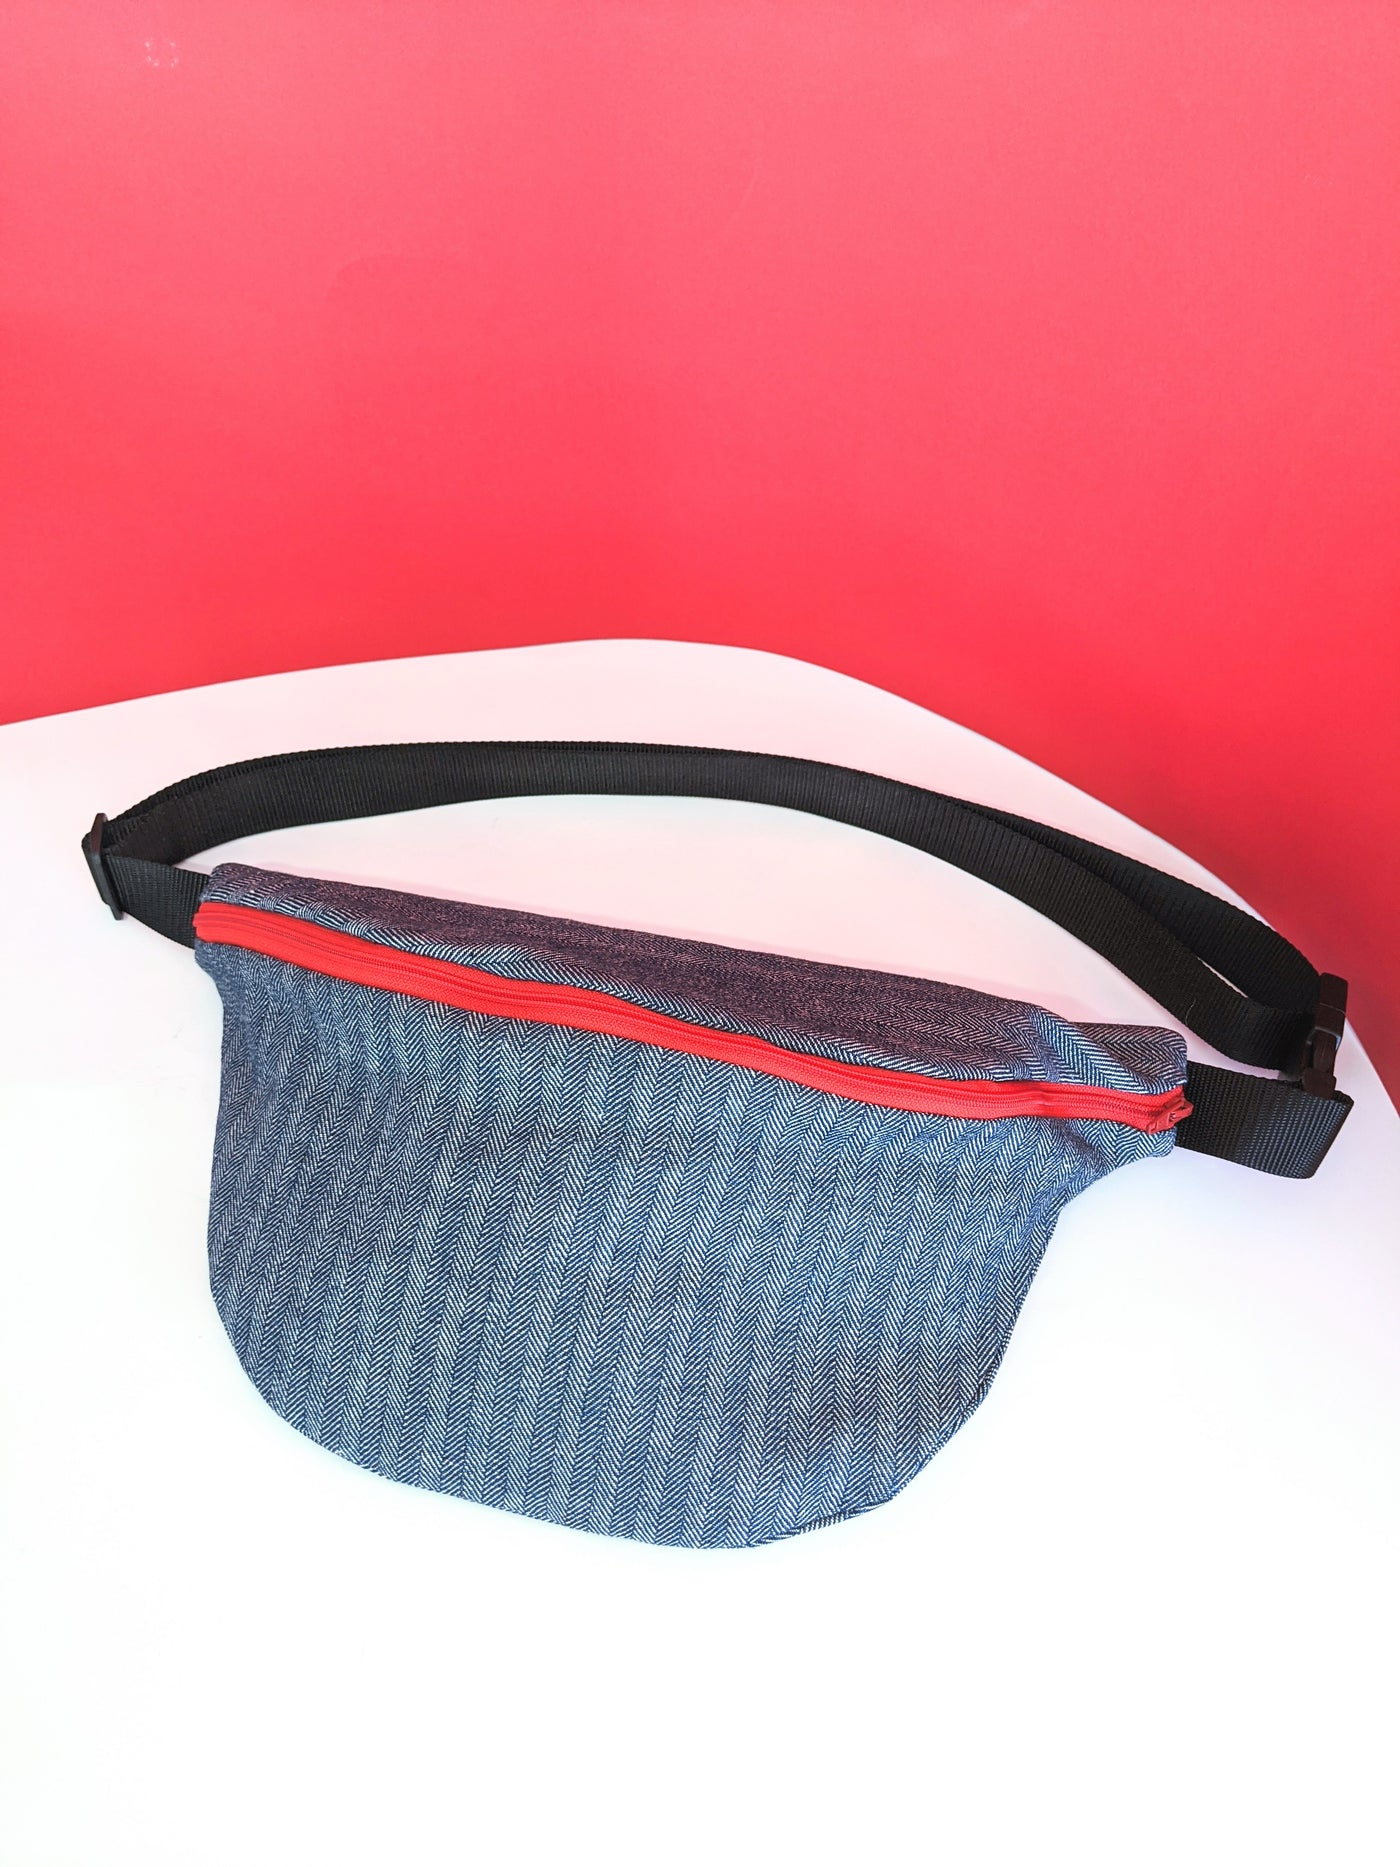 Navy herringbone fanny pack by Pep! available at Local Assembly